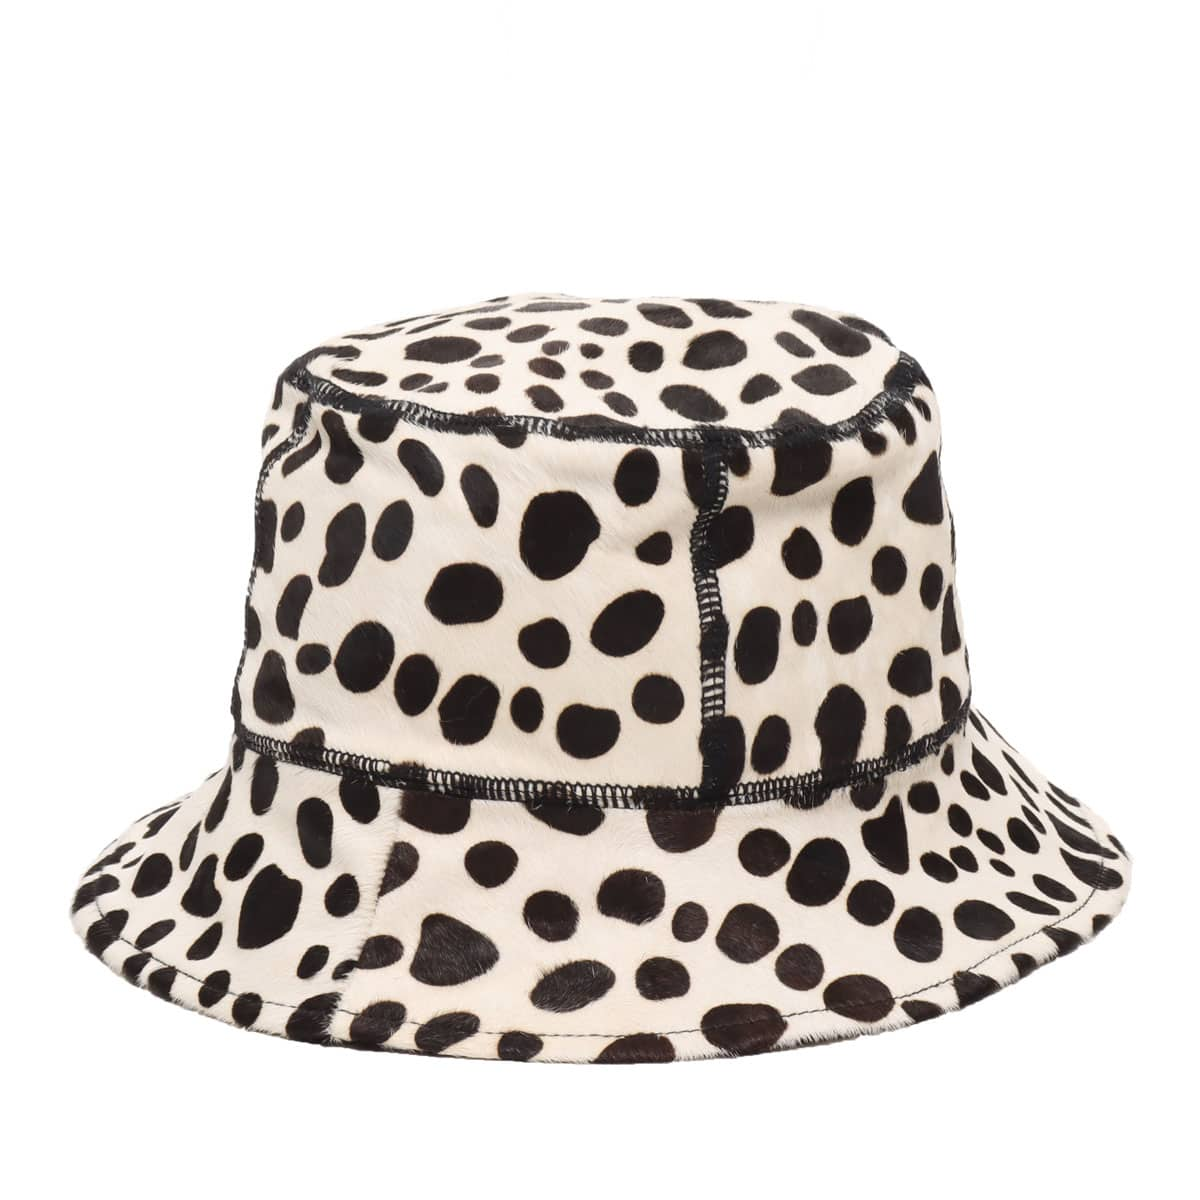 UGG Dalmatian Bucket Hat BLACK/WHITE 20FA-S_photo_large